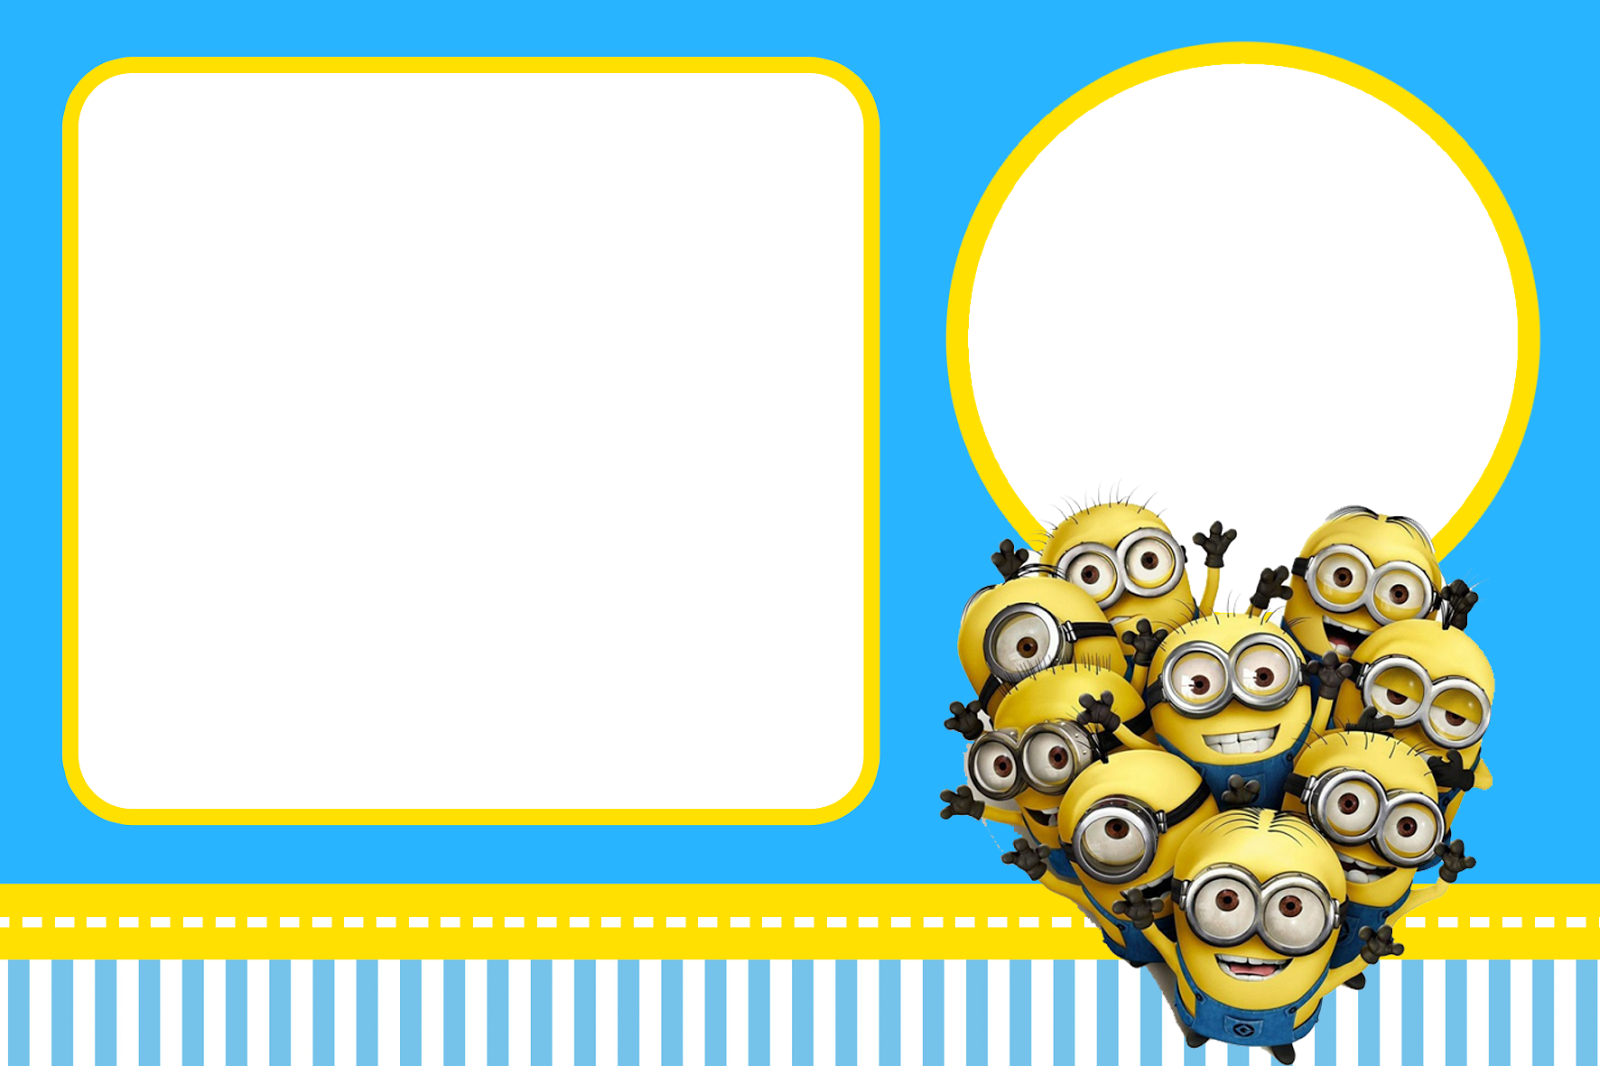 Despicable Me Invitations And Party Free Printables Is It For - Birthday invitation template minions